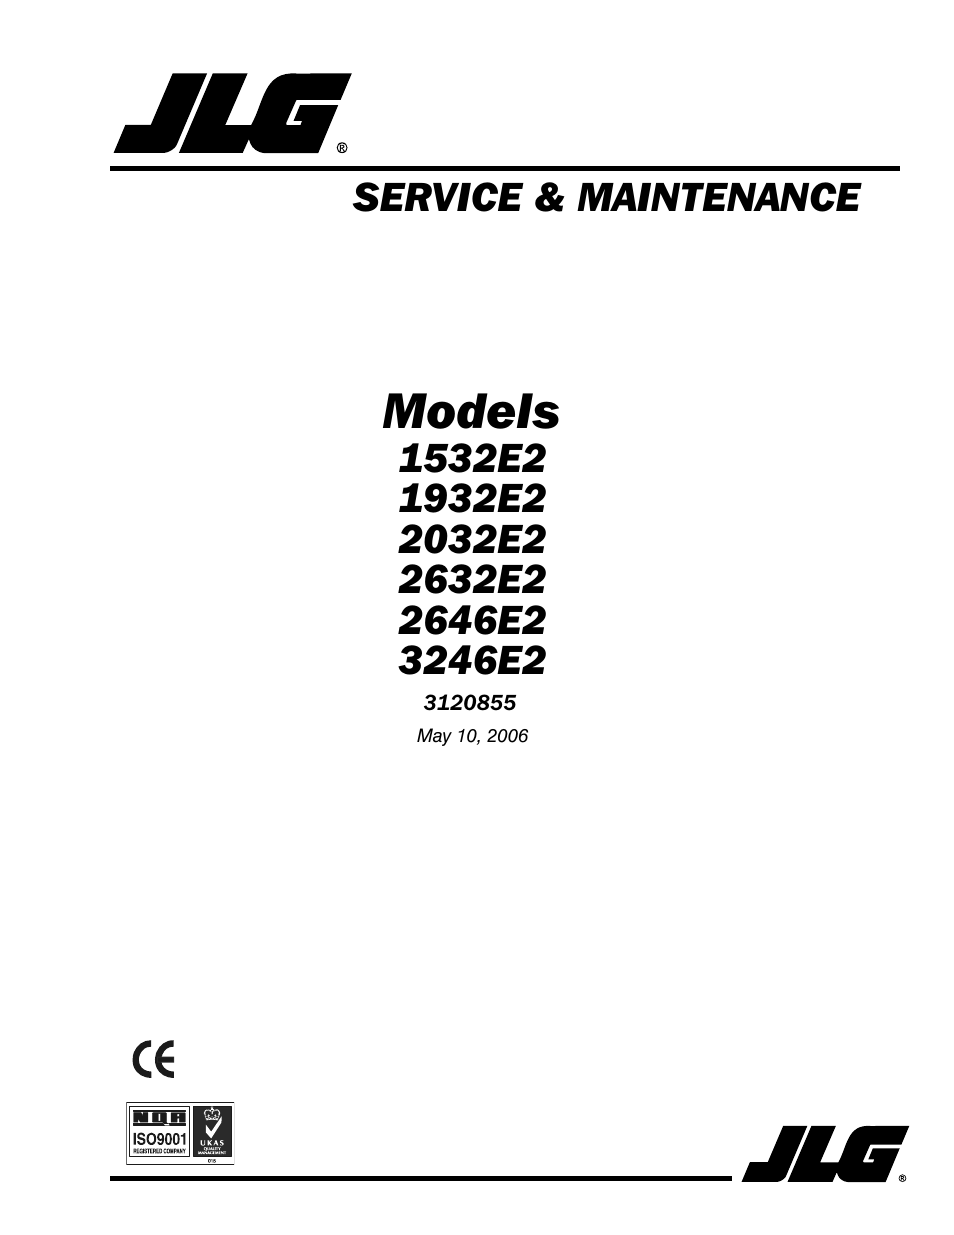 JLG 3246E2 Service Manual User Manual | 80 pages | Also for: 2646E2 Service  Manual, 2632E2 Service Manual, 2032E2 Service Manual, 1932E2 Service Manual,  ...